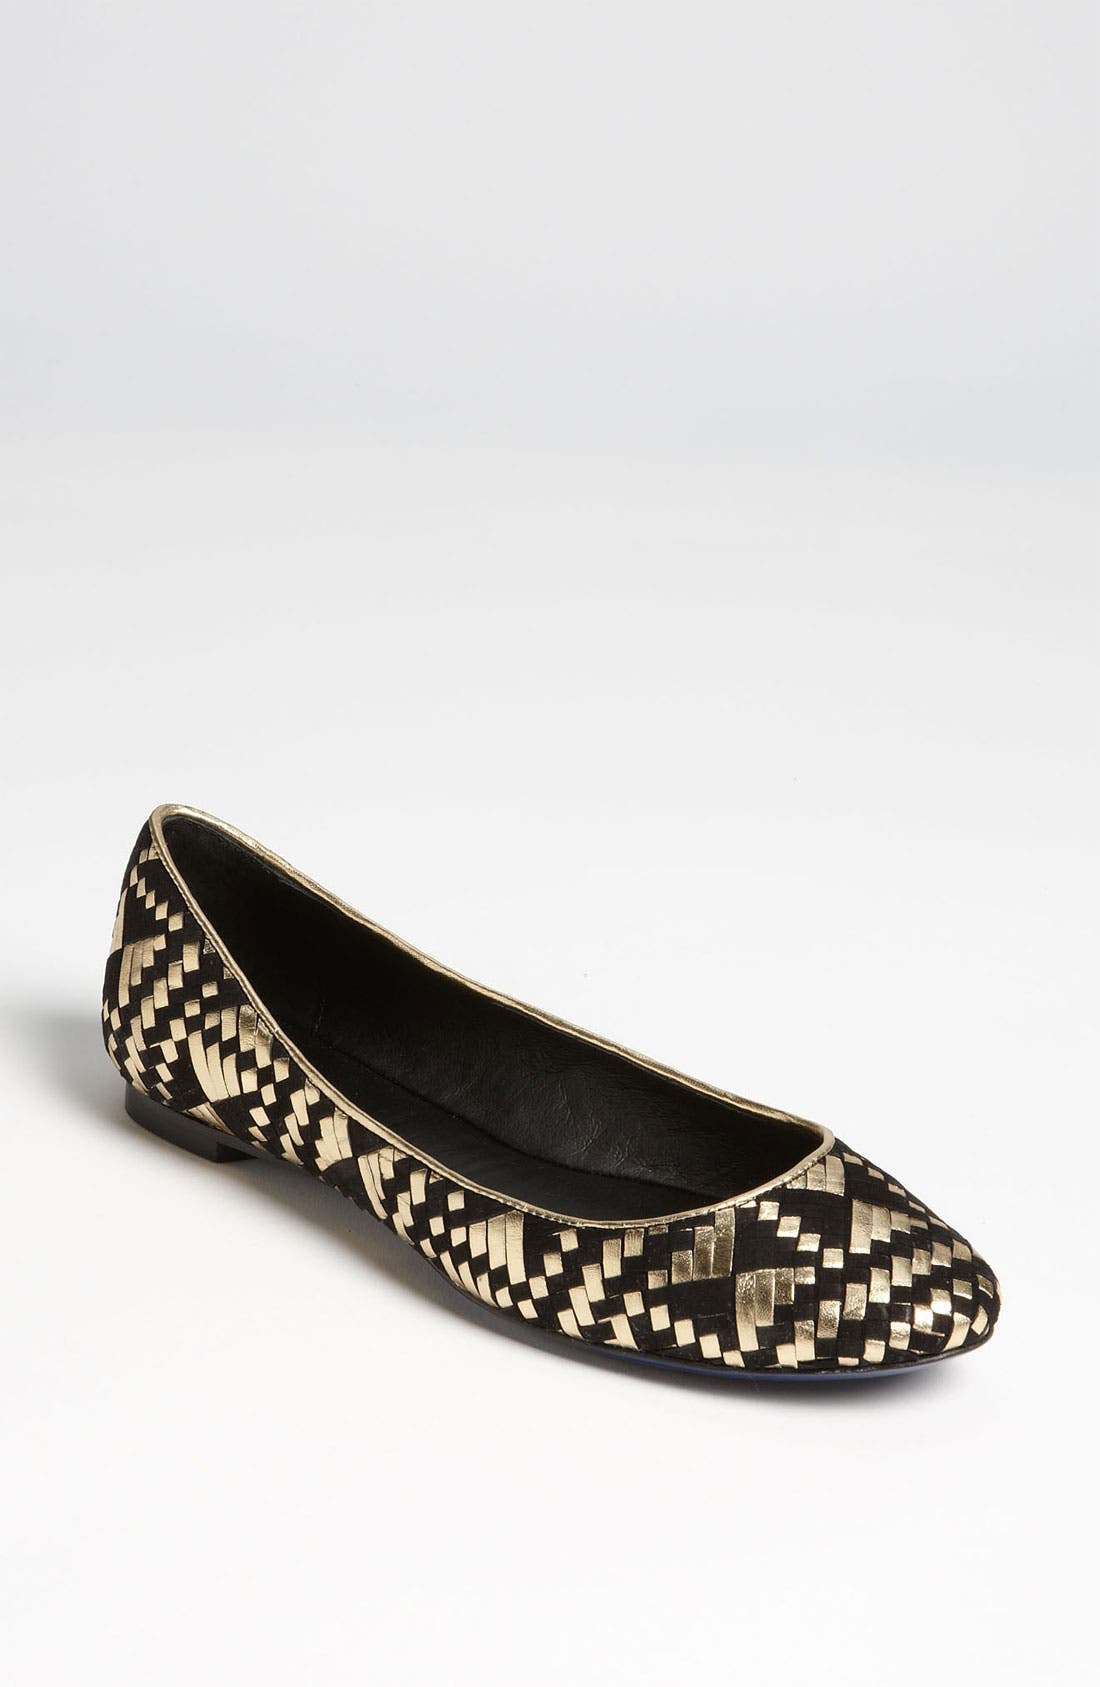 Alternate Image 1 Selected - Rebecca Minkoff 'Uma' Flat